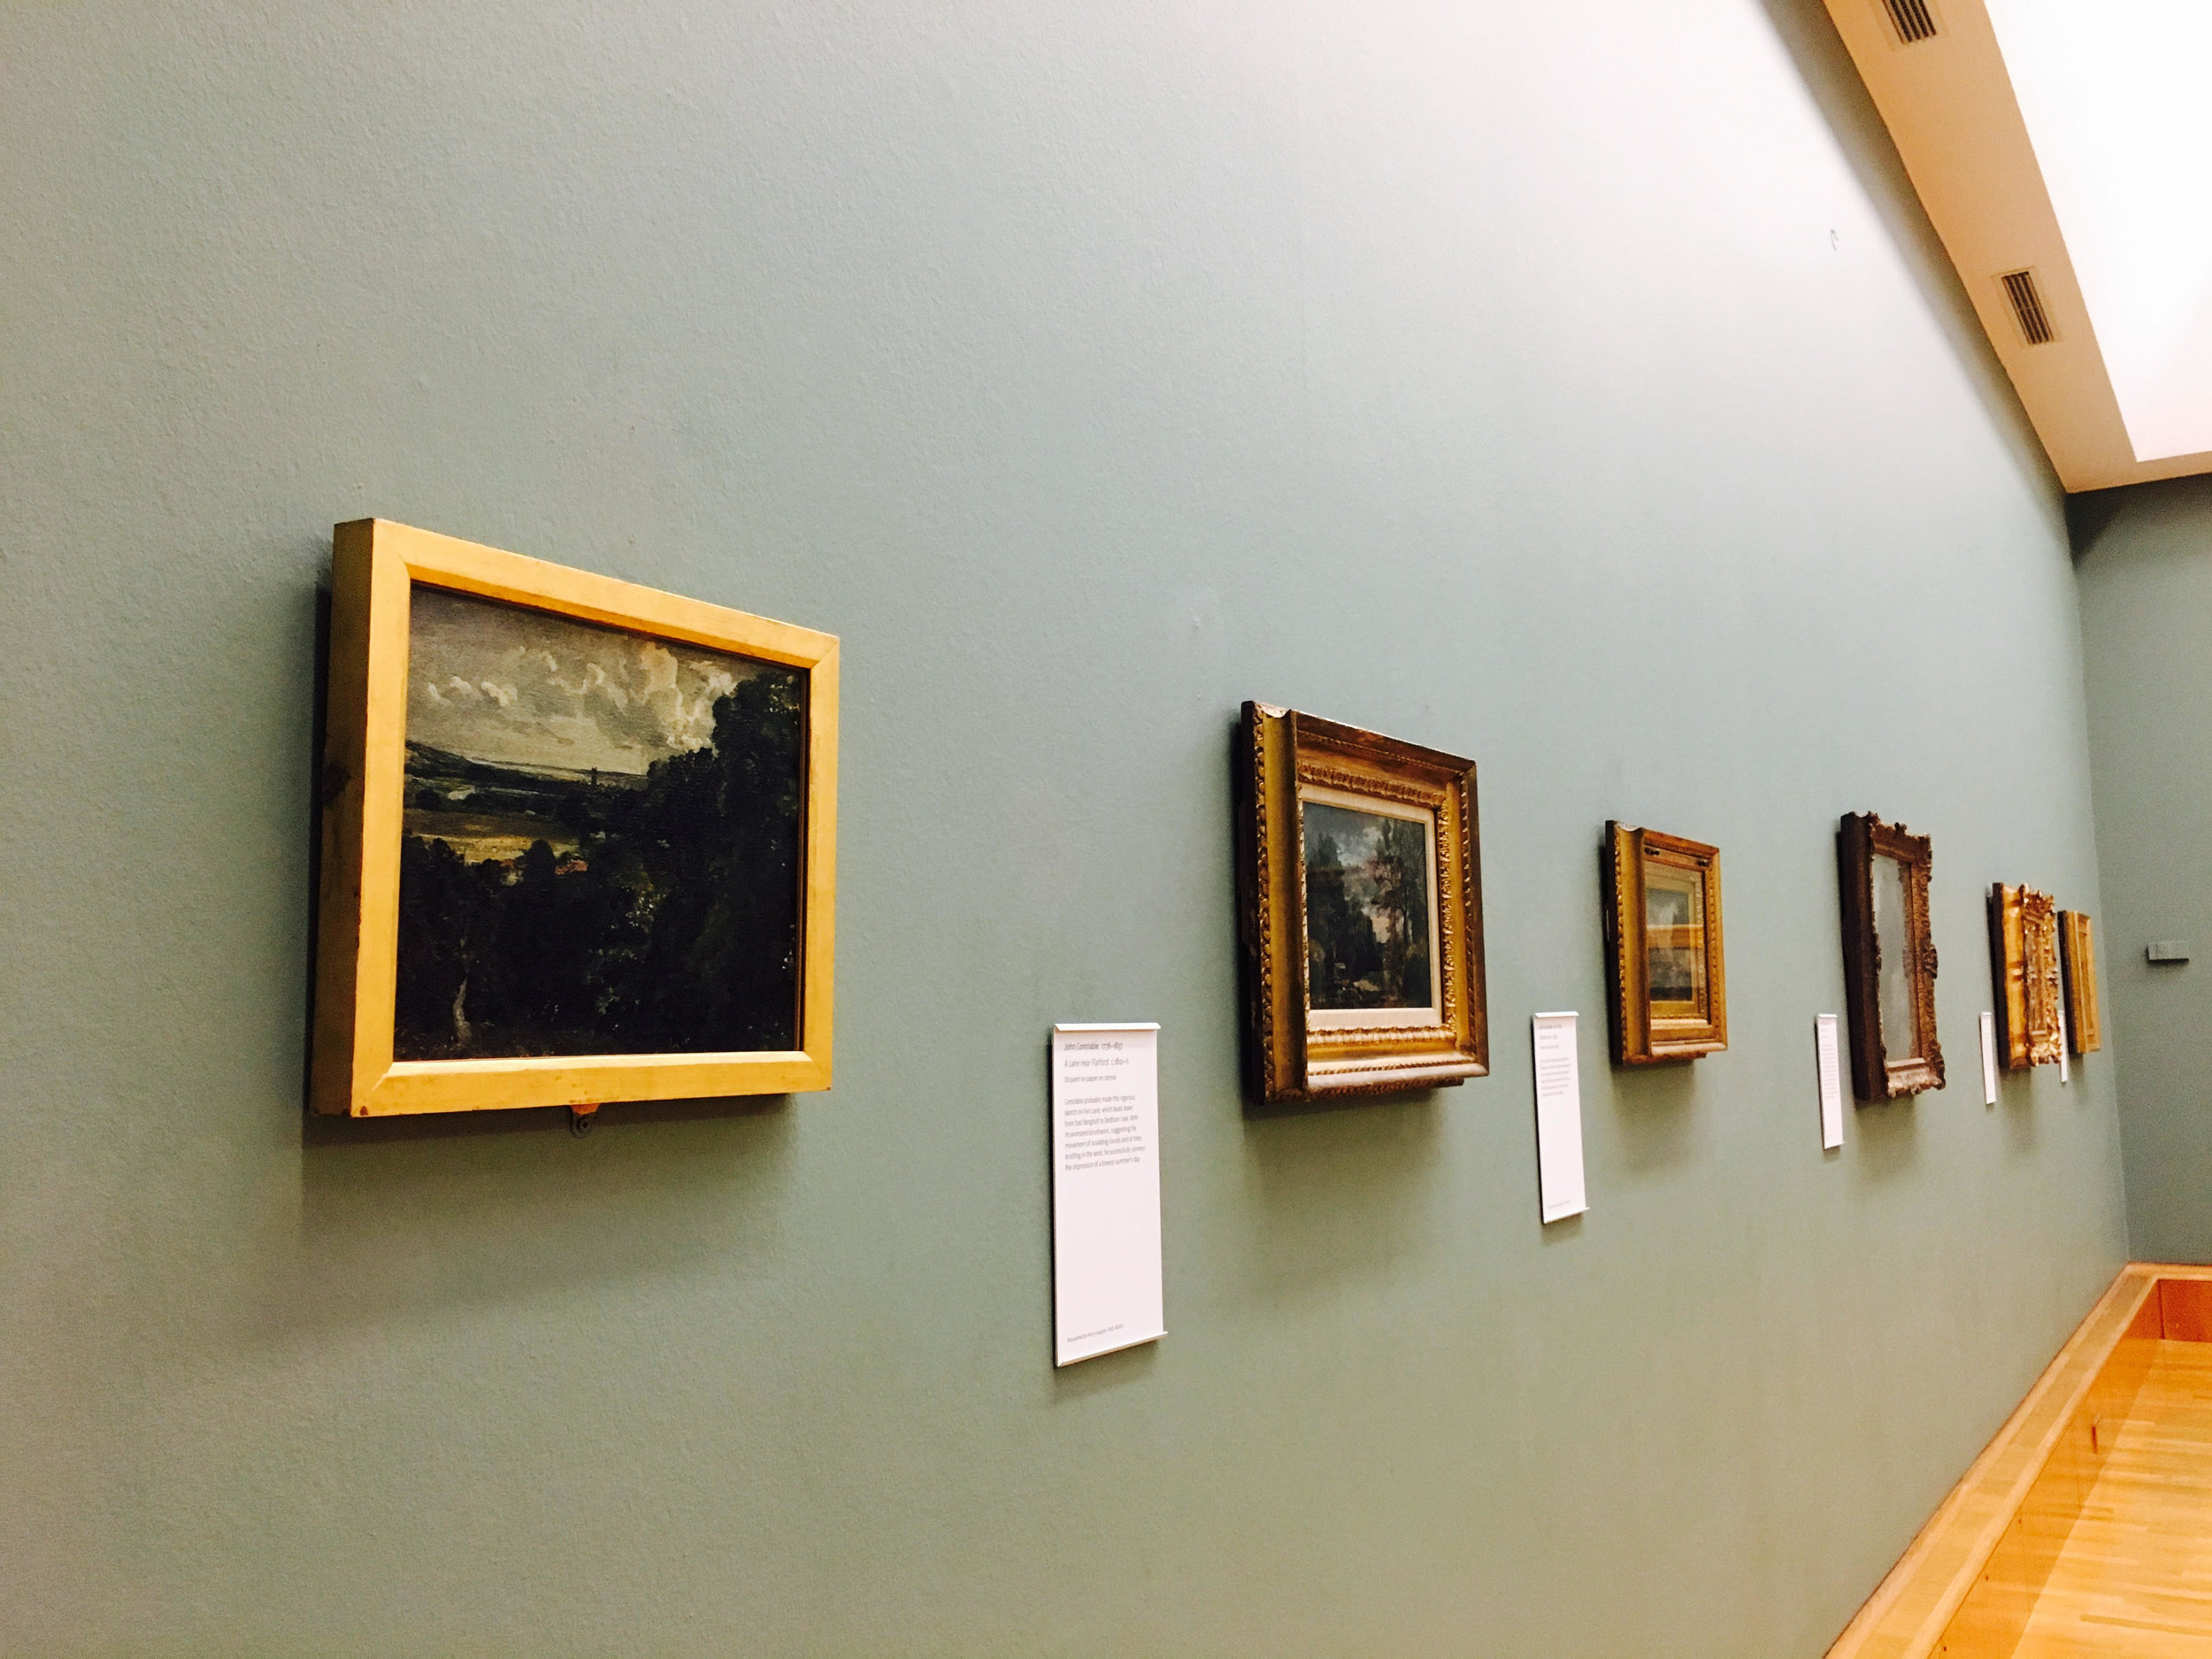 Turner gallery at the Tate Britain